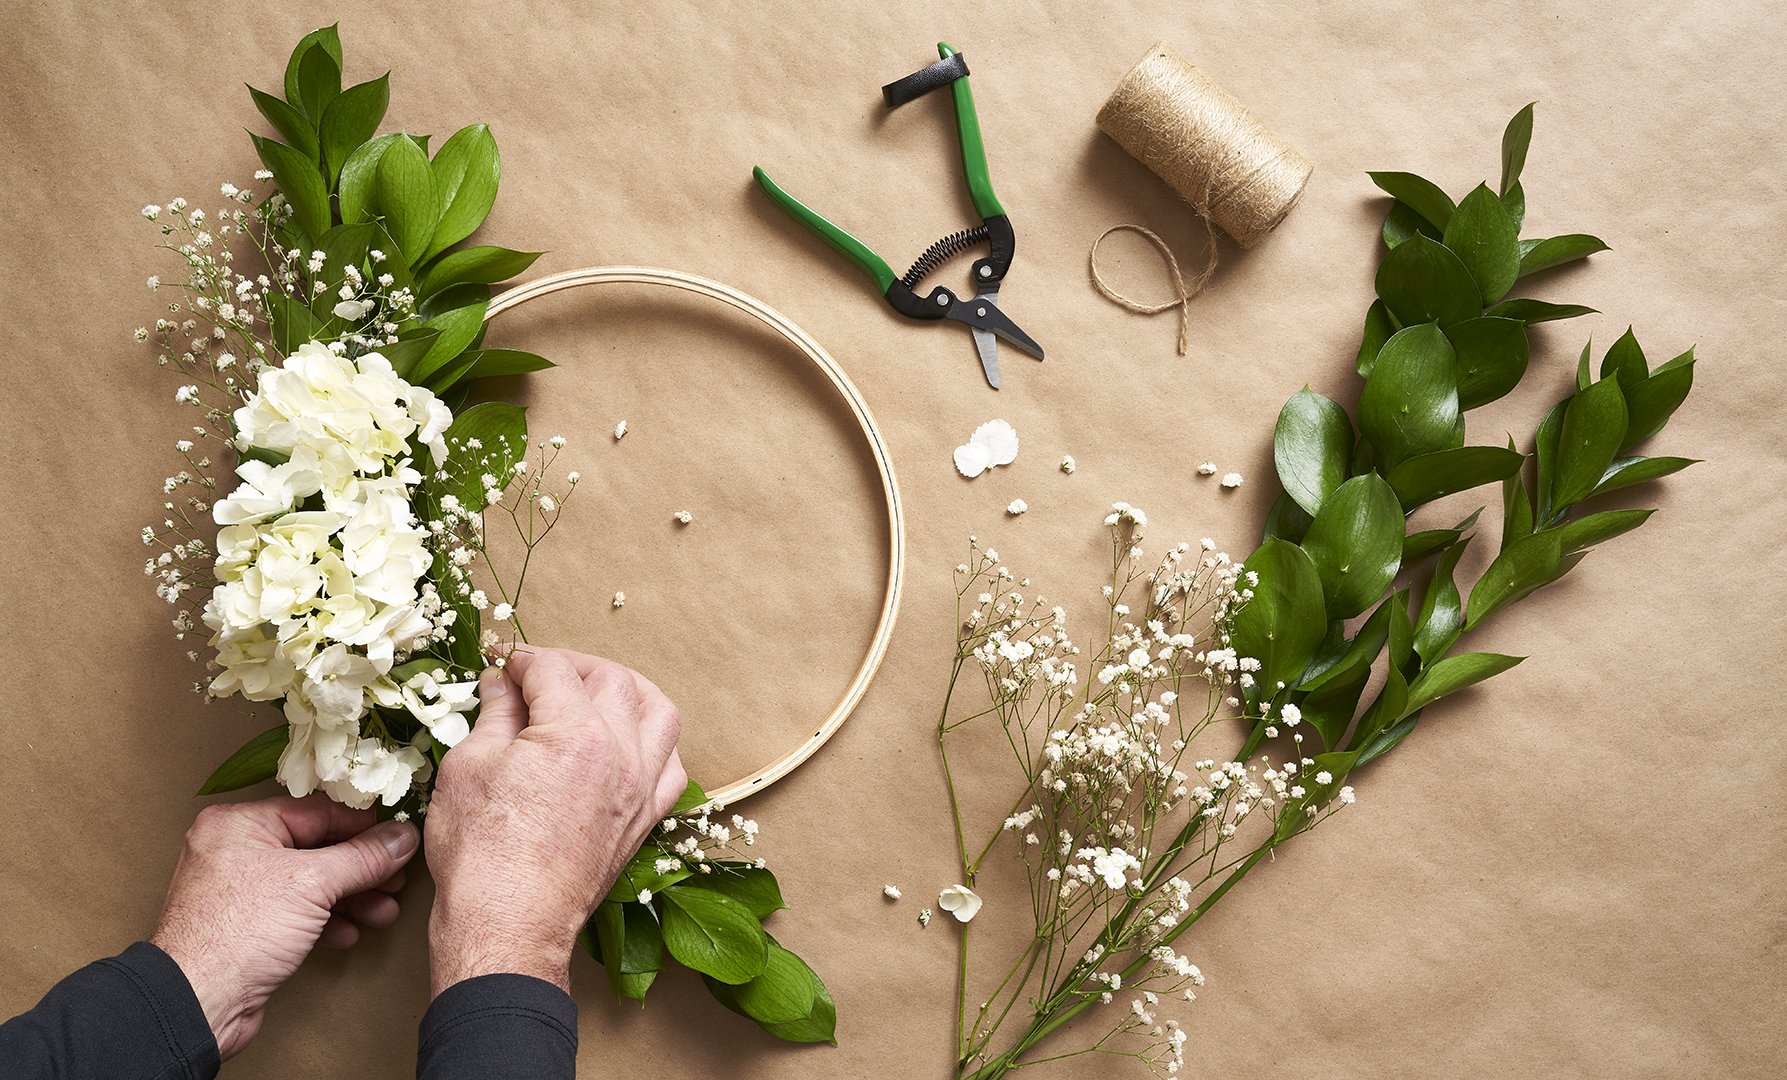 DIY Your Own Spring Wreath